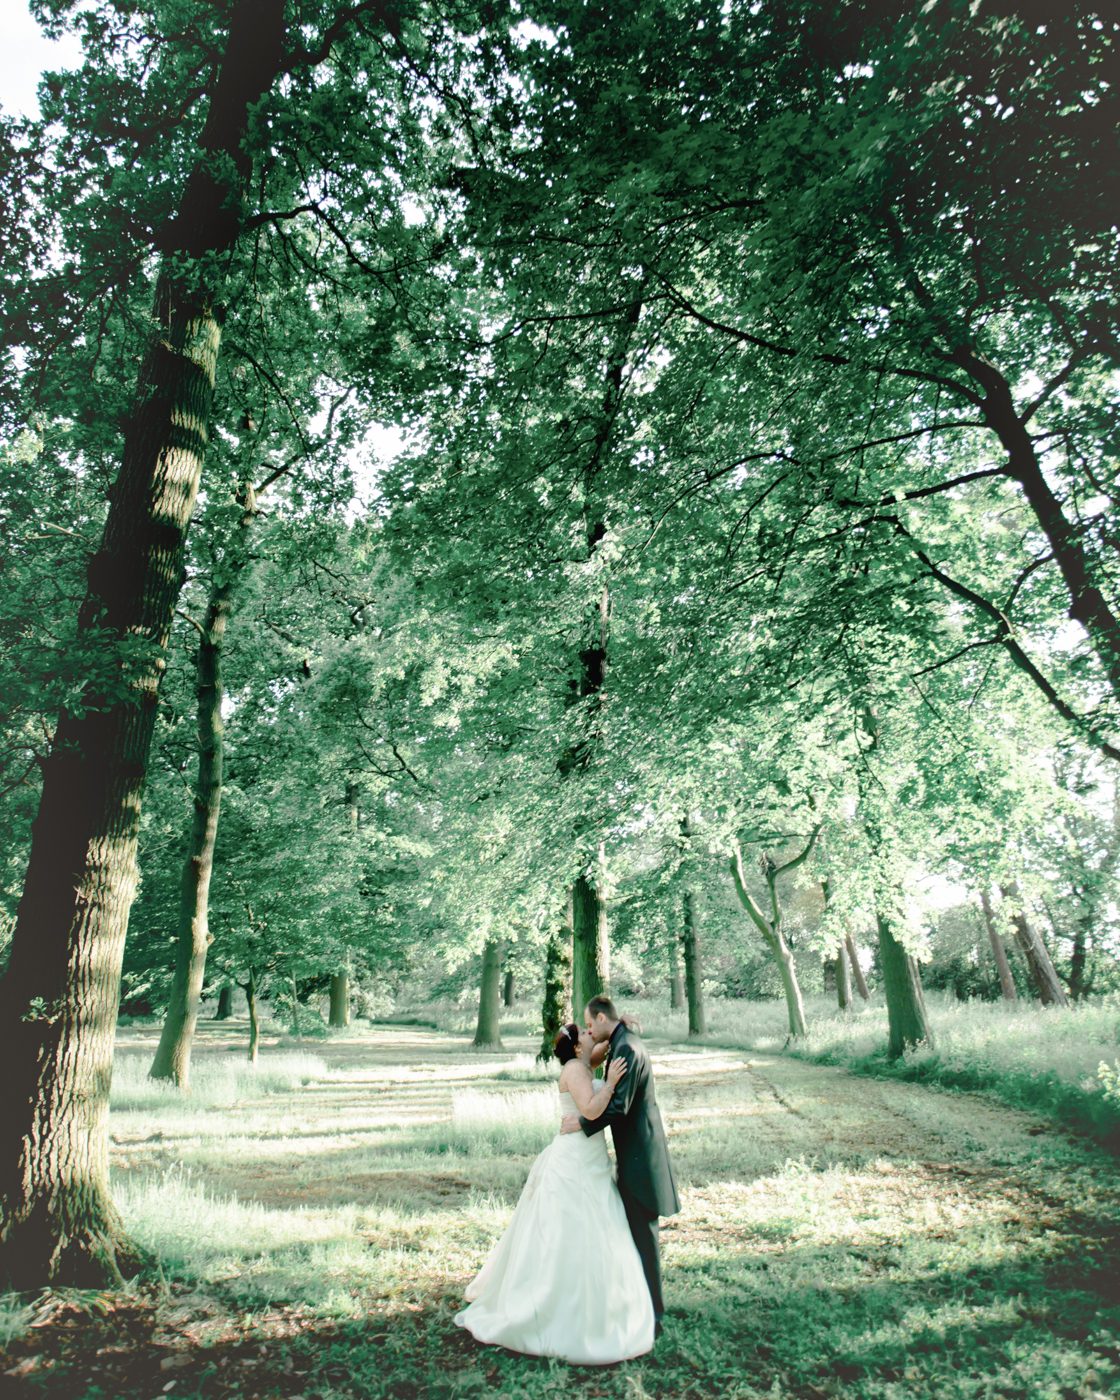 557 - Chris and Natalies Wedding (MAIN) - DO NOT SHARE THIS IMAGES ONLINE -0920.JPG